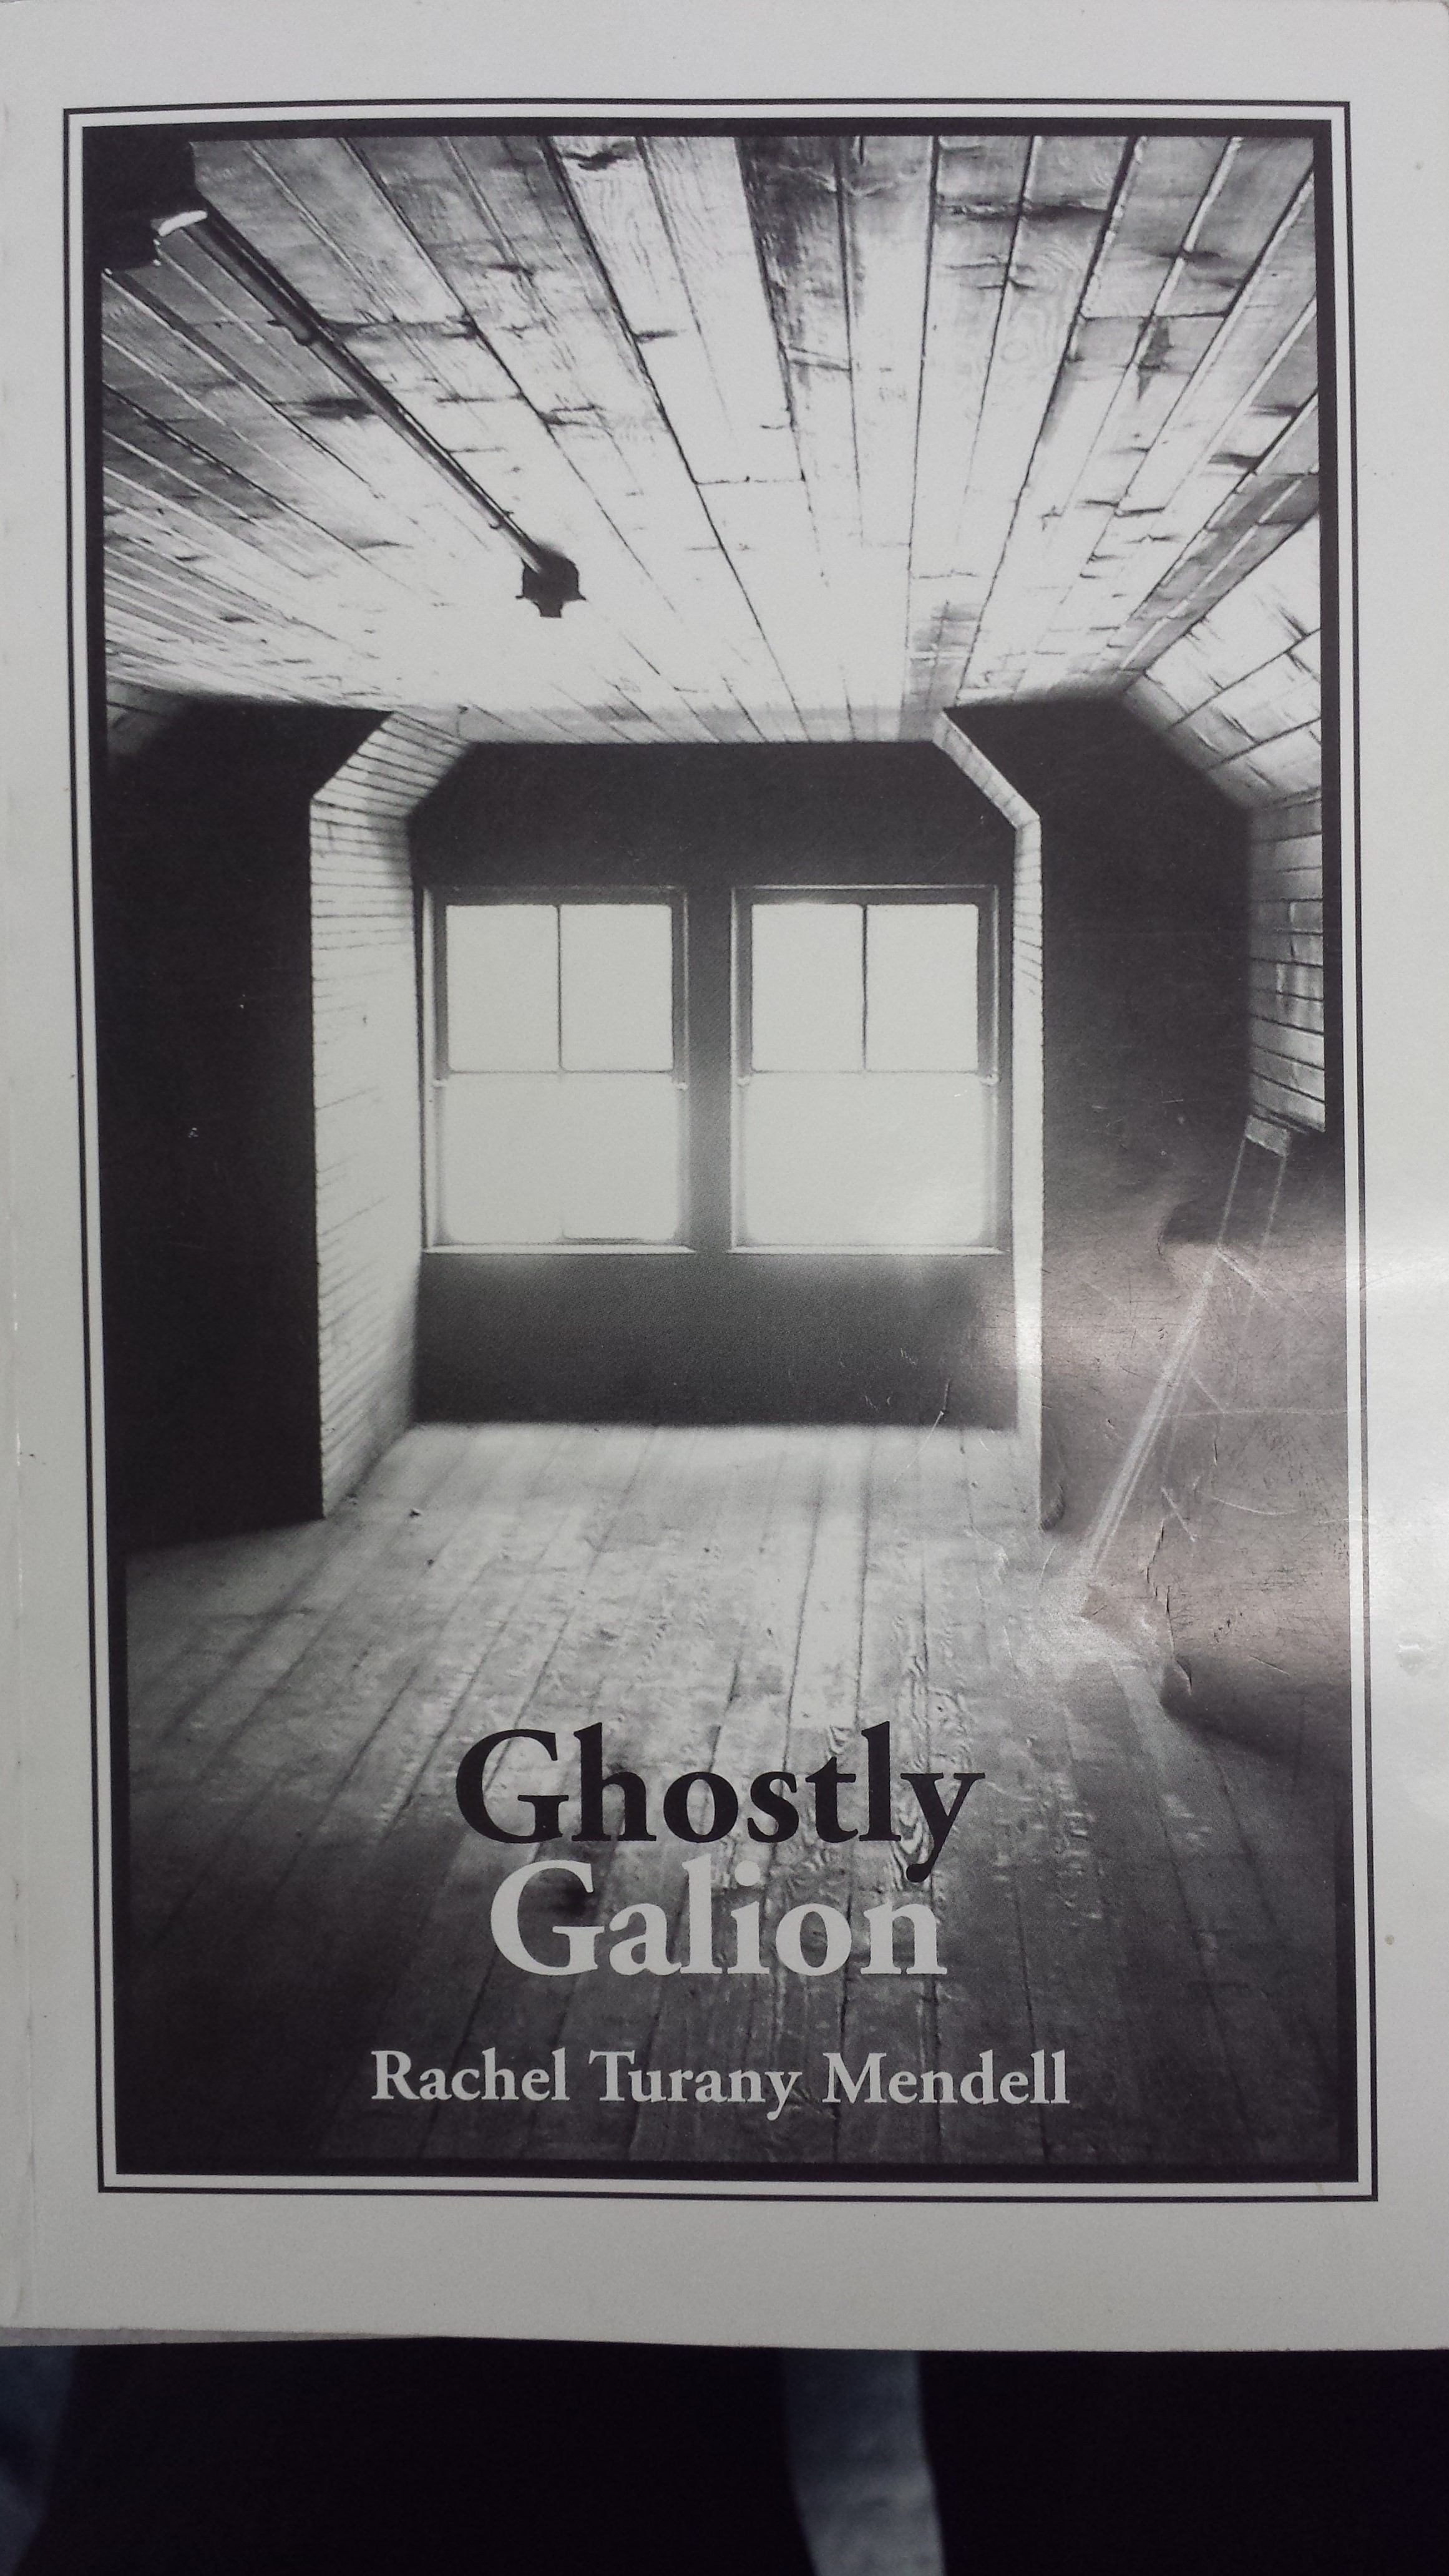 Ghostly Galion Rachel Turany Mendell